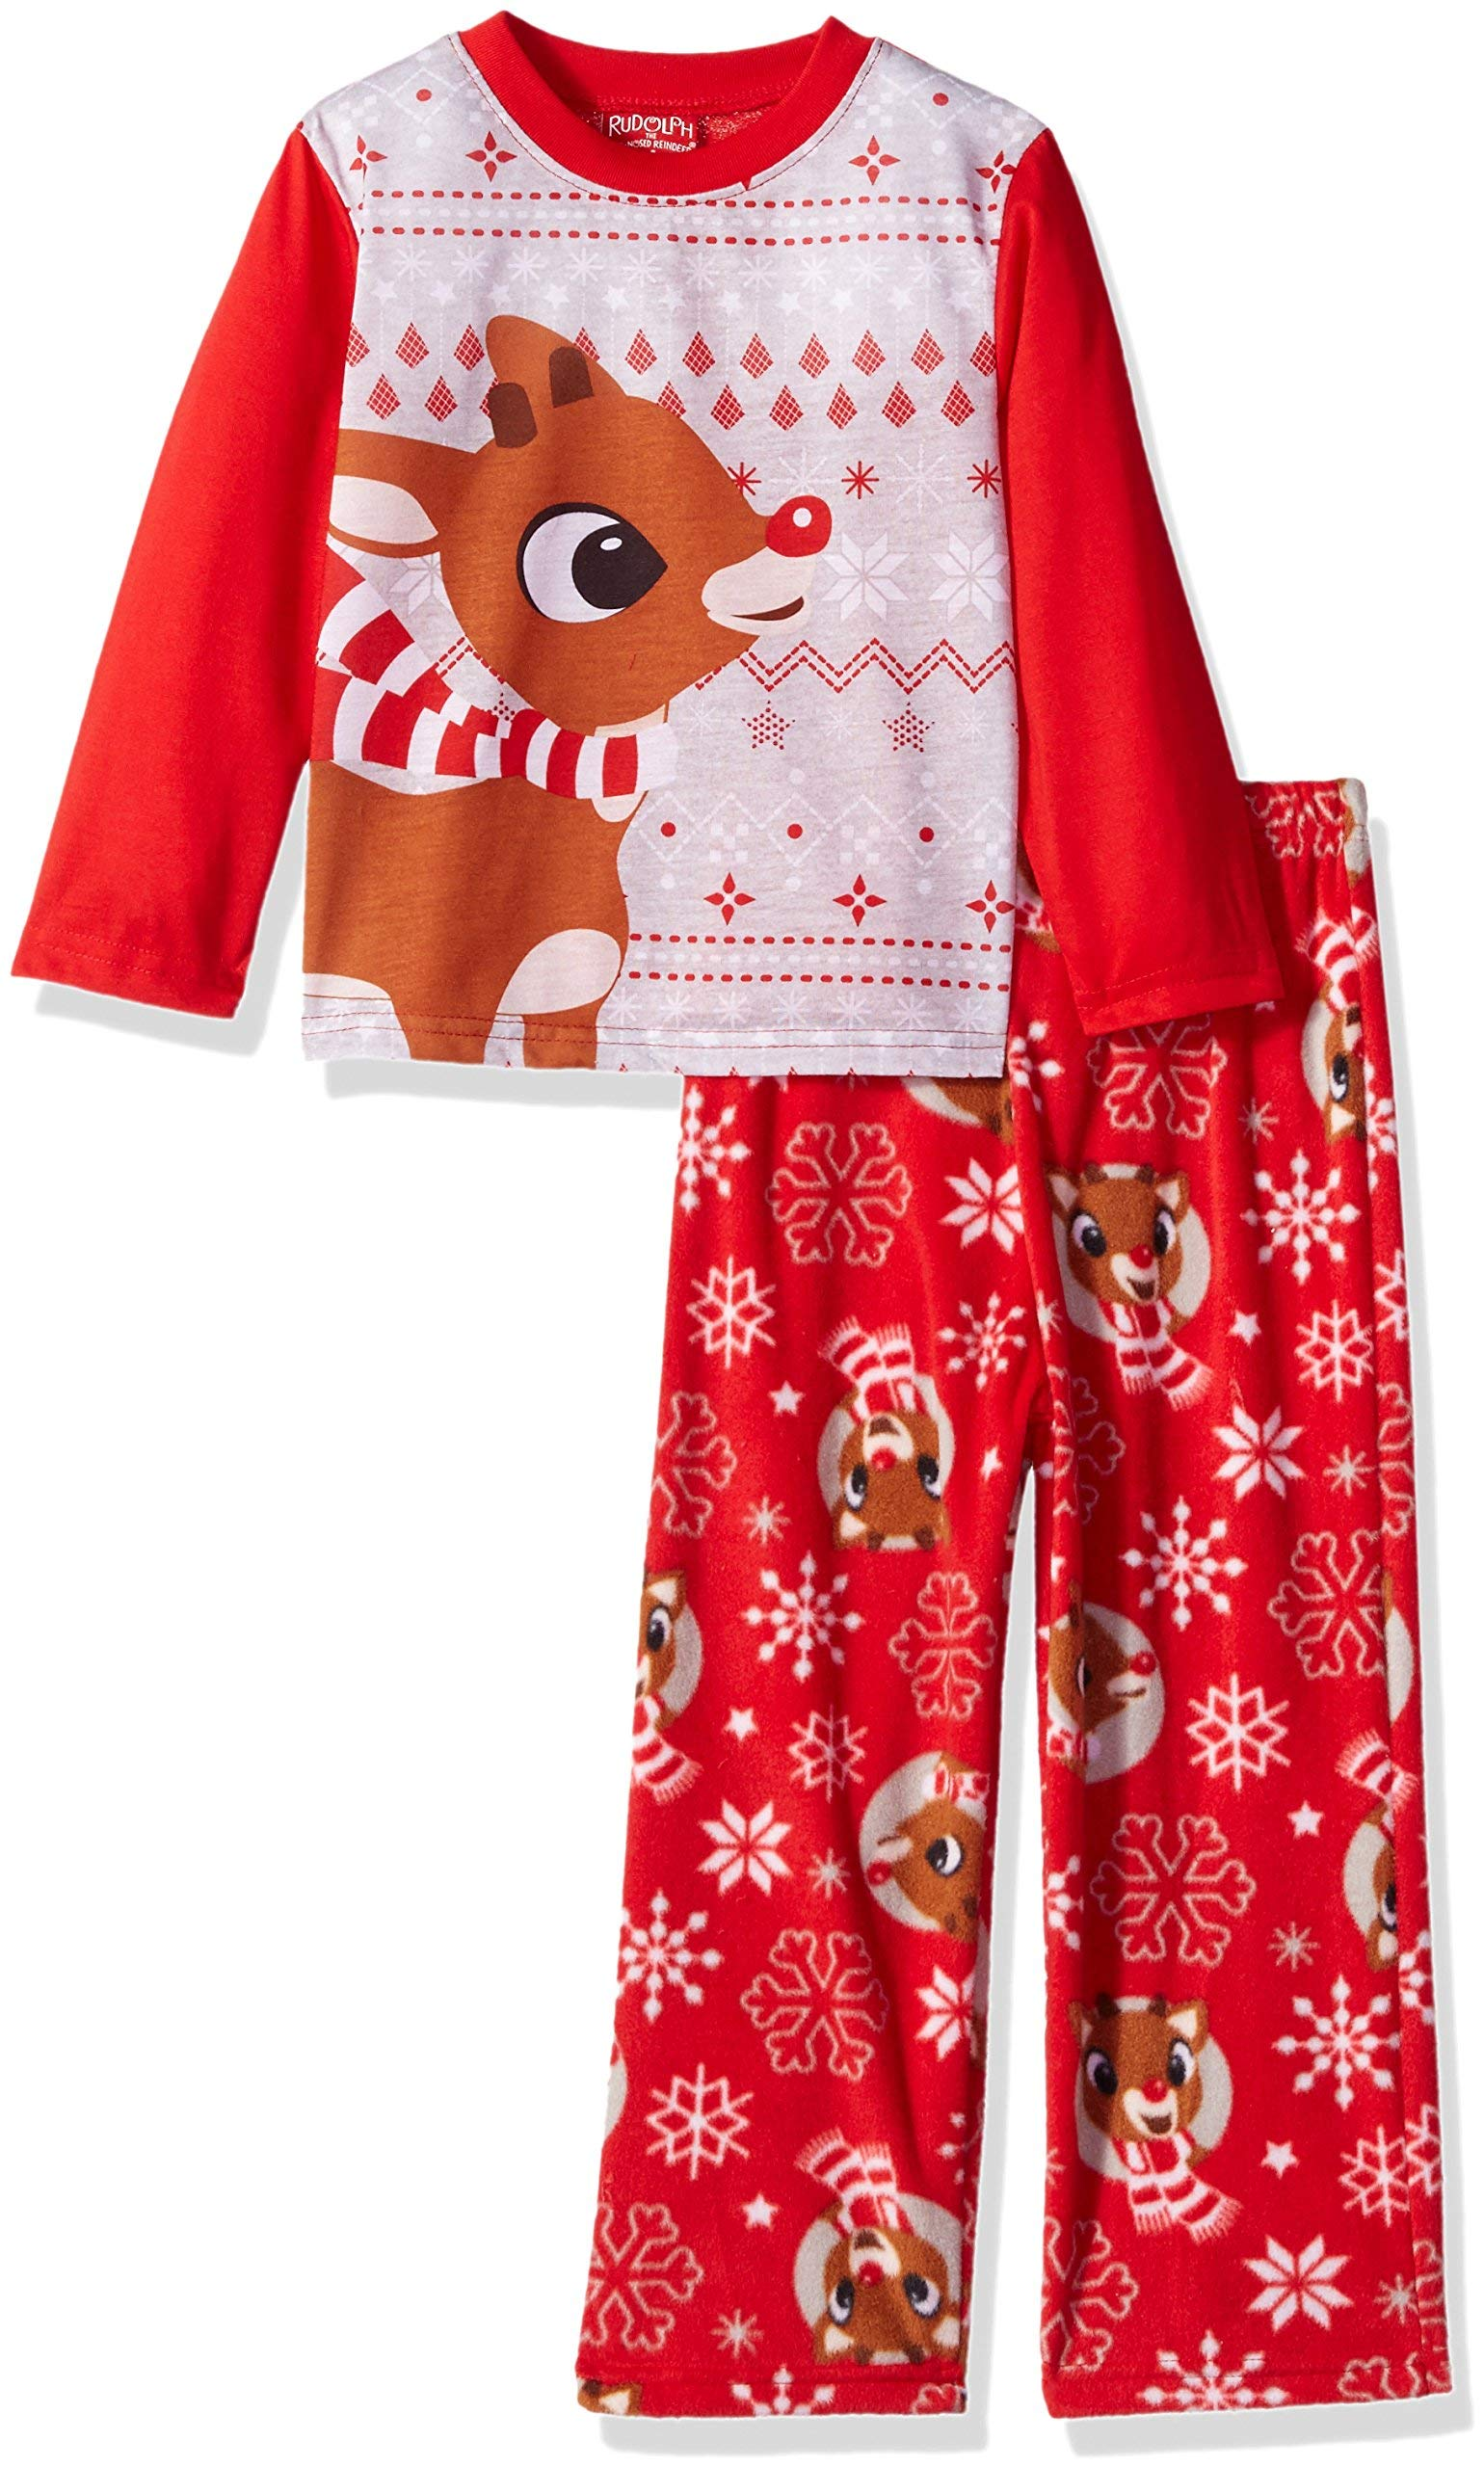 Rudolph the Red Nosed Reindeer Christmas Holiday Family Sleepwear Pajamas  (6 c1cfa8e18